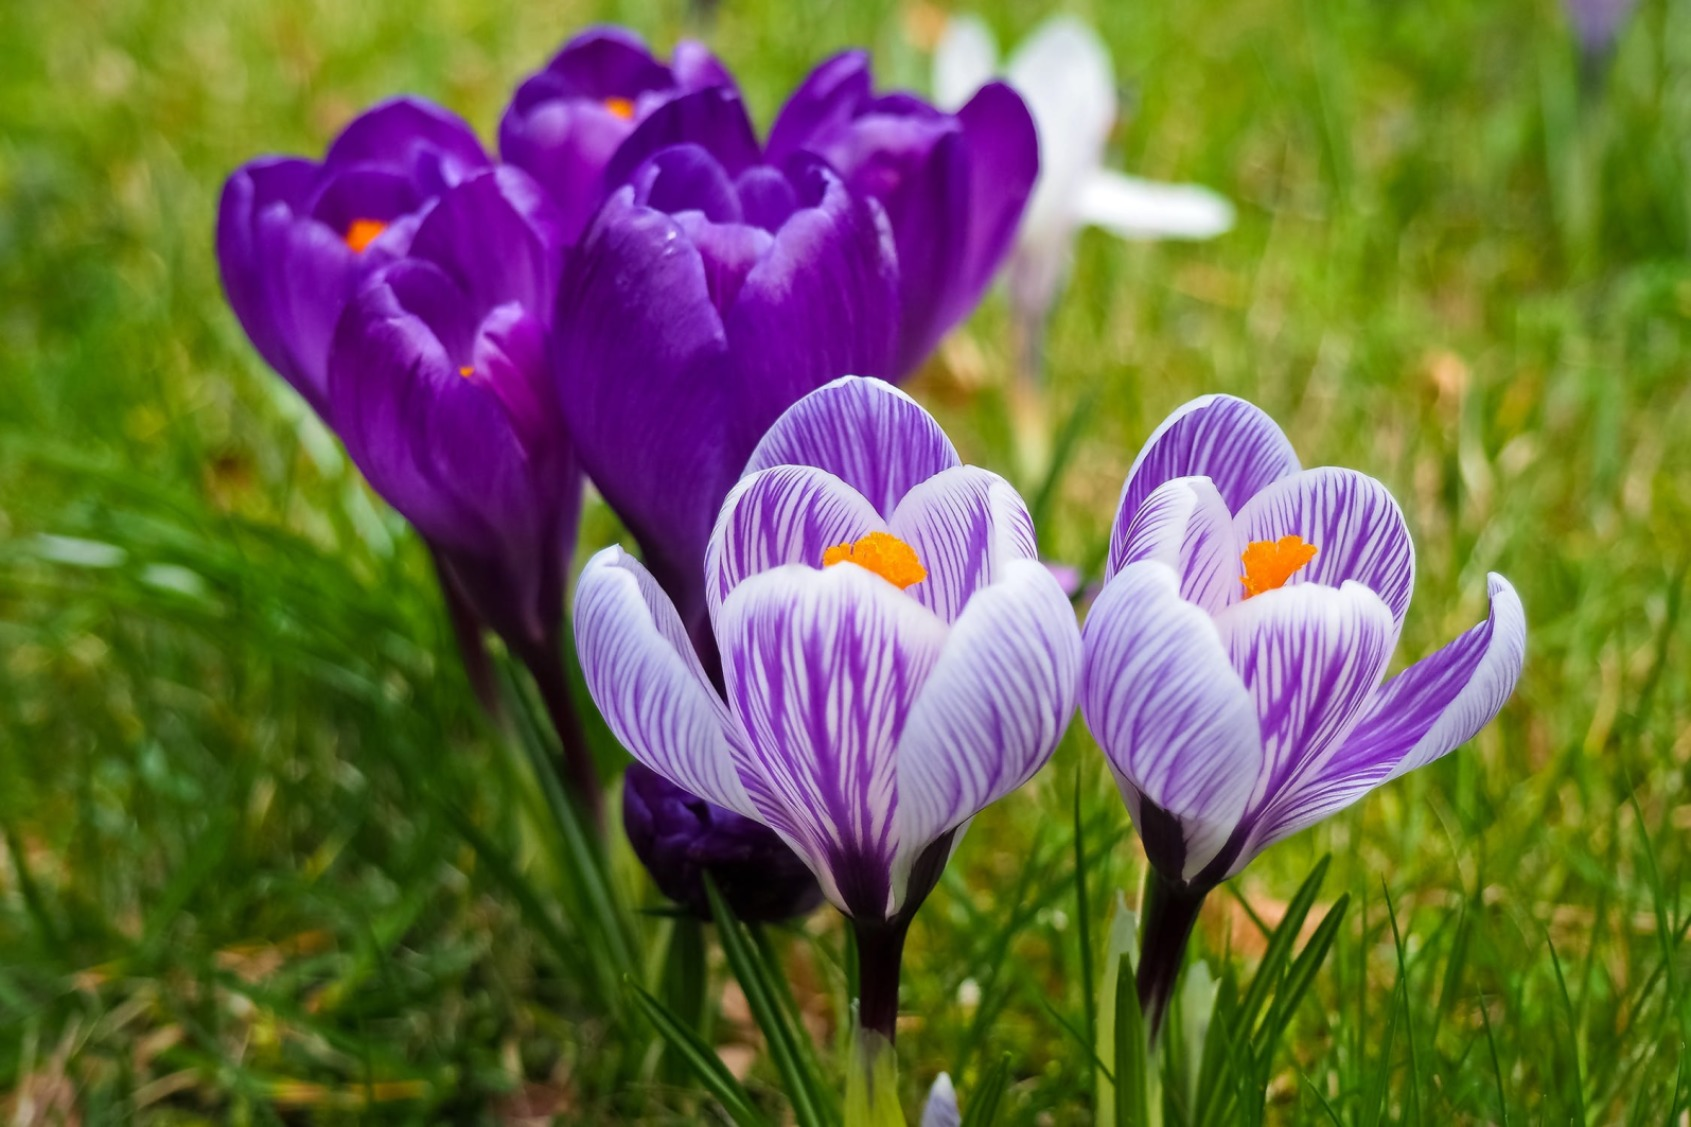 Crocus Flowers - Original image